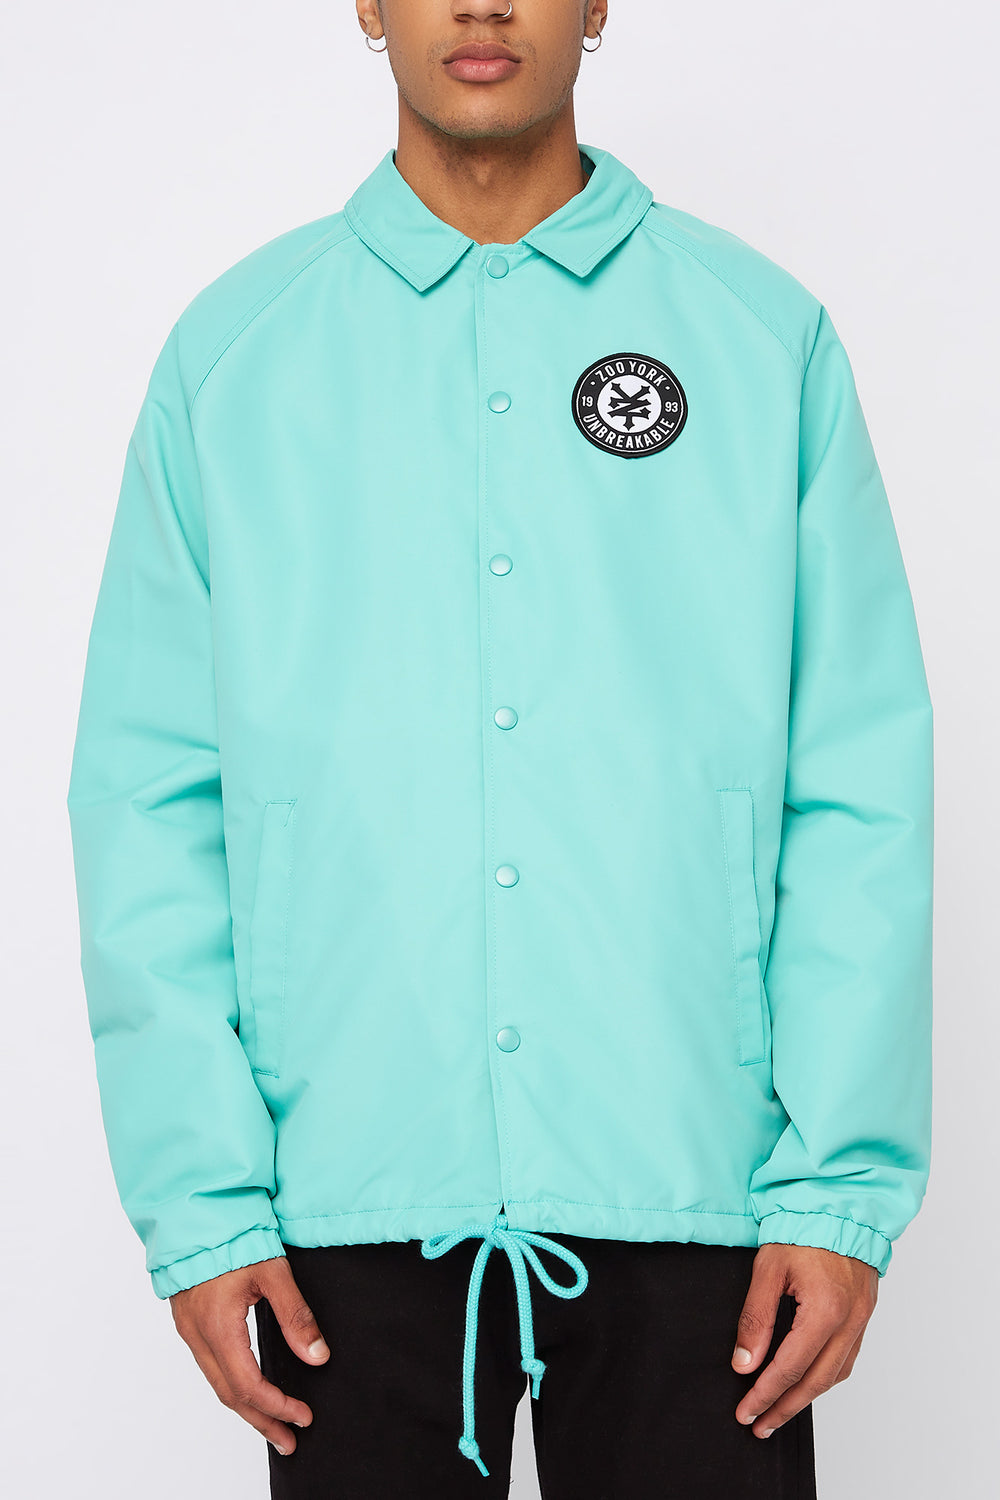 Zoo York Mens Patch Logo Coach Jacket Turquoise